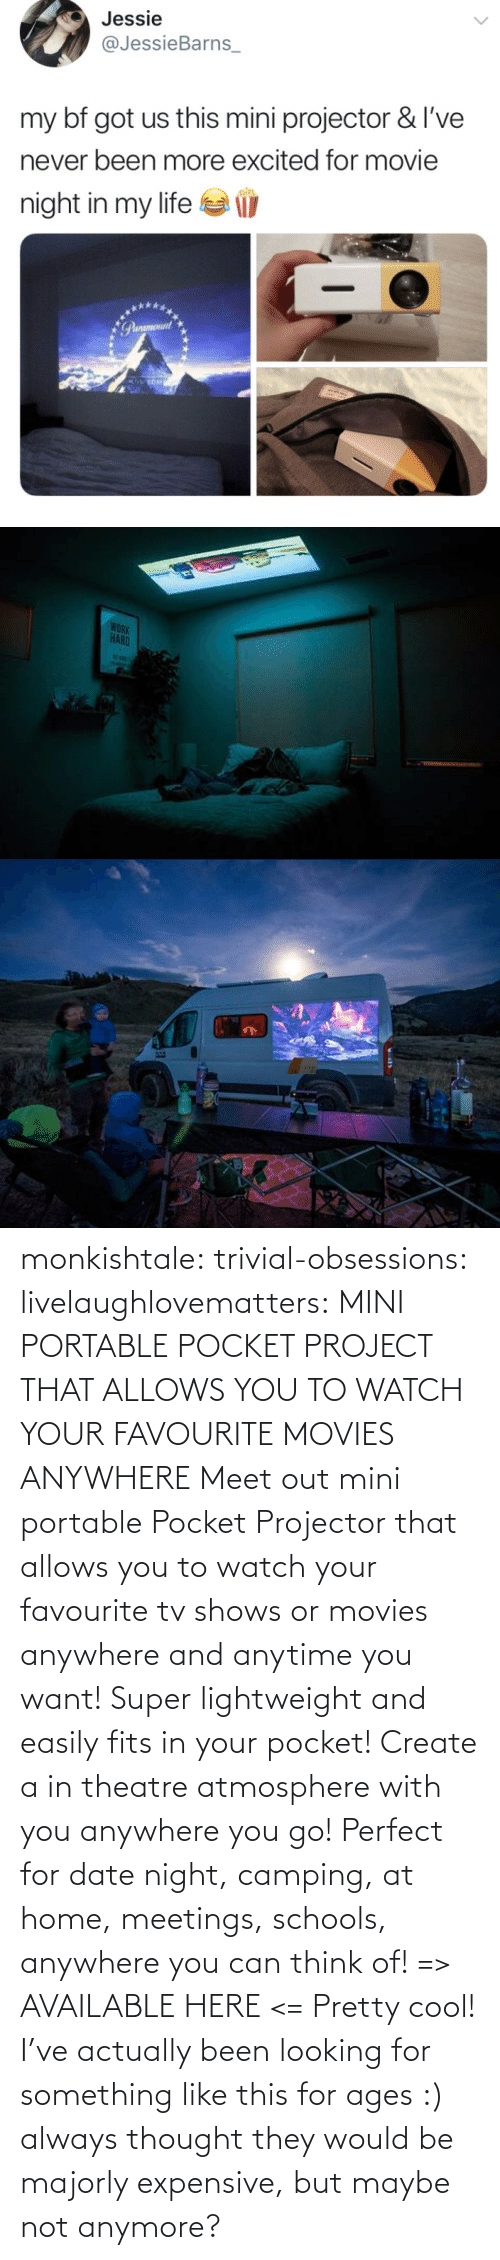 maybe: monkishtale: trivial-obsessions:   livelaughlovematters:   MINI PORTABLE POCKET PROJECT THAT ALLOWS YOU TO WATCH YOUR FAVOURITE MOVIES ANYWHERE Meet out mini portable Pocket Projector that allows you to watch your favourite tv shows or movies anywhere and anytime you want! Super lightweight and easily fits in your pocket! Create a in theatre atmosphere with you anywhere you go! Perfect for date night, camping, at home, meetings, schools, anywhere you can think of! => AVAILABLE HERE <=    Pretty cool!    I've actually been looking for something like this for ages :) always thought they would be majorly expensive, but maybe not anymore?